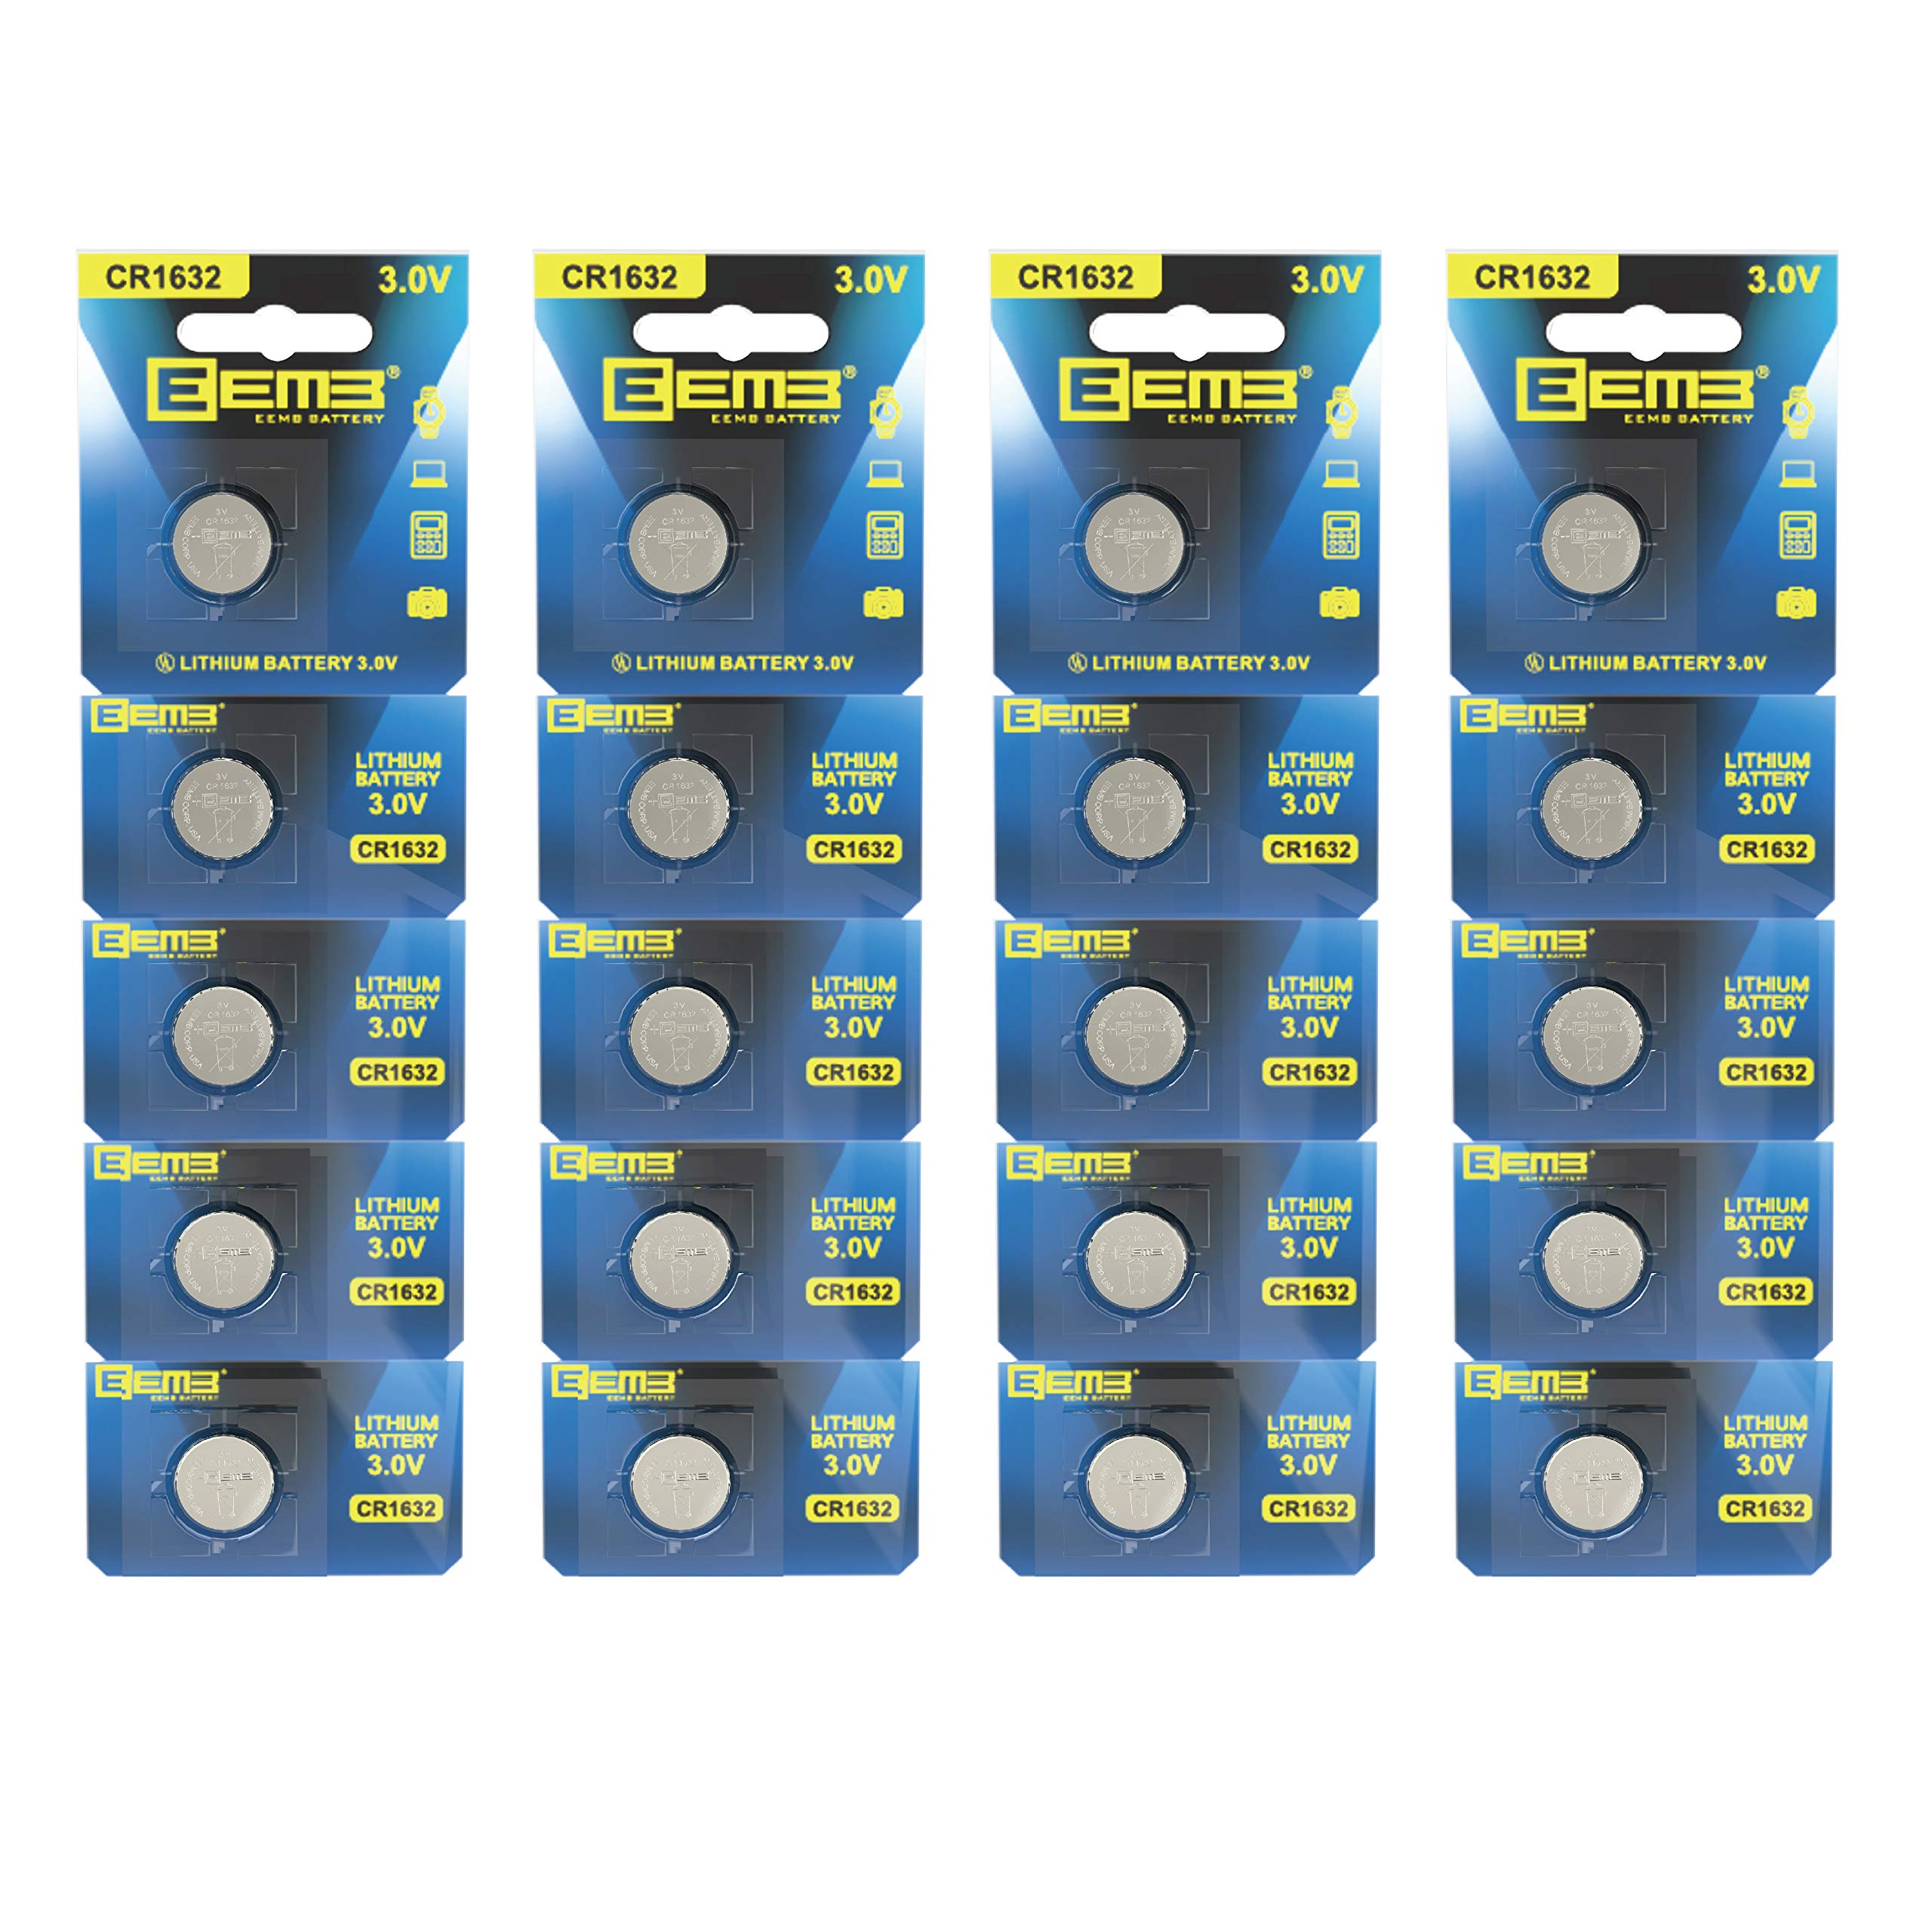 EEMB CR1632 3 V Battery Button Coin Cell Lithium Battery 120 mAh Battery Perfect UL Certified for Watches, Car Remote Key, Alarm Clock Toys (20PCS)